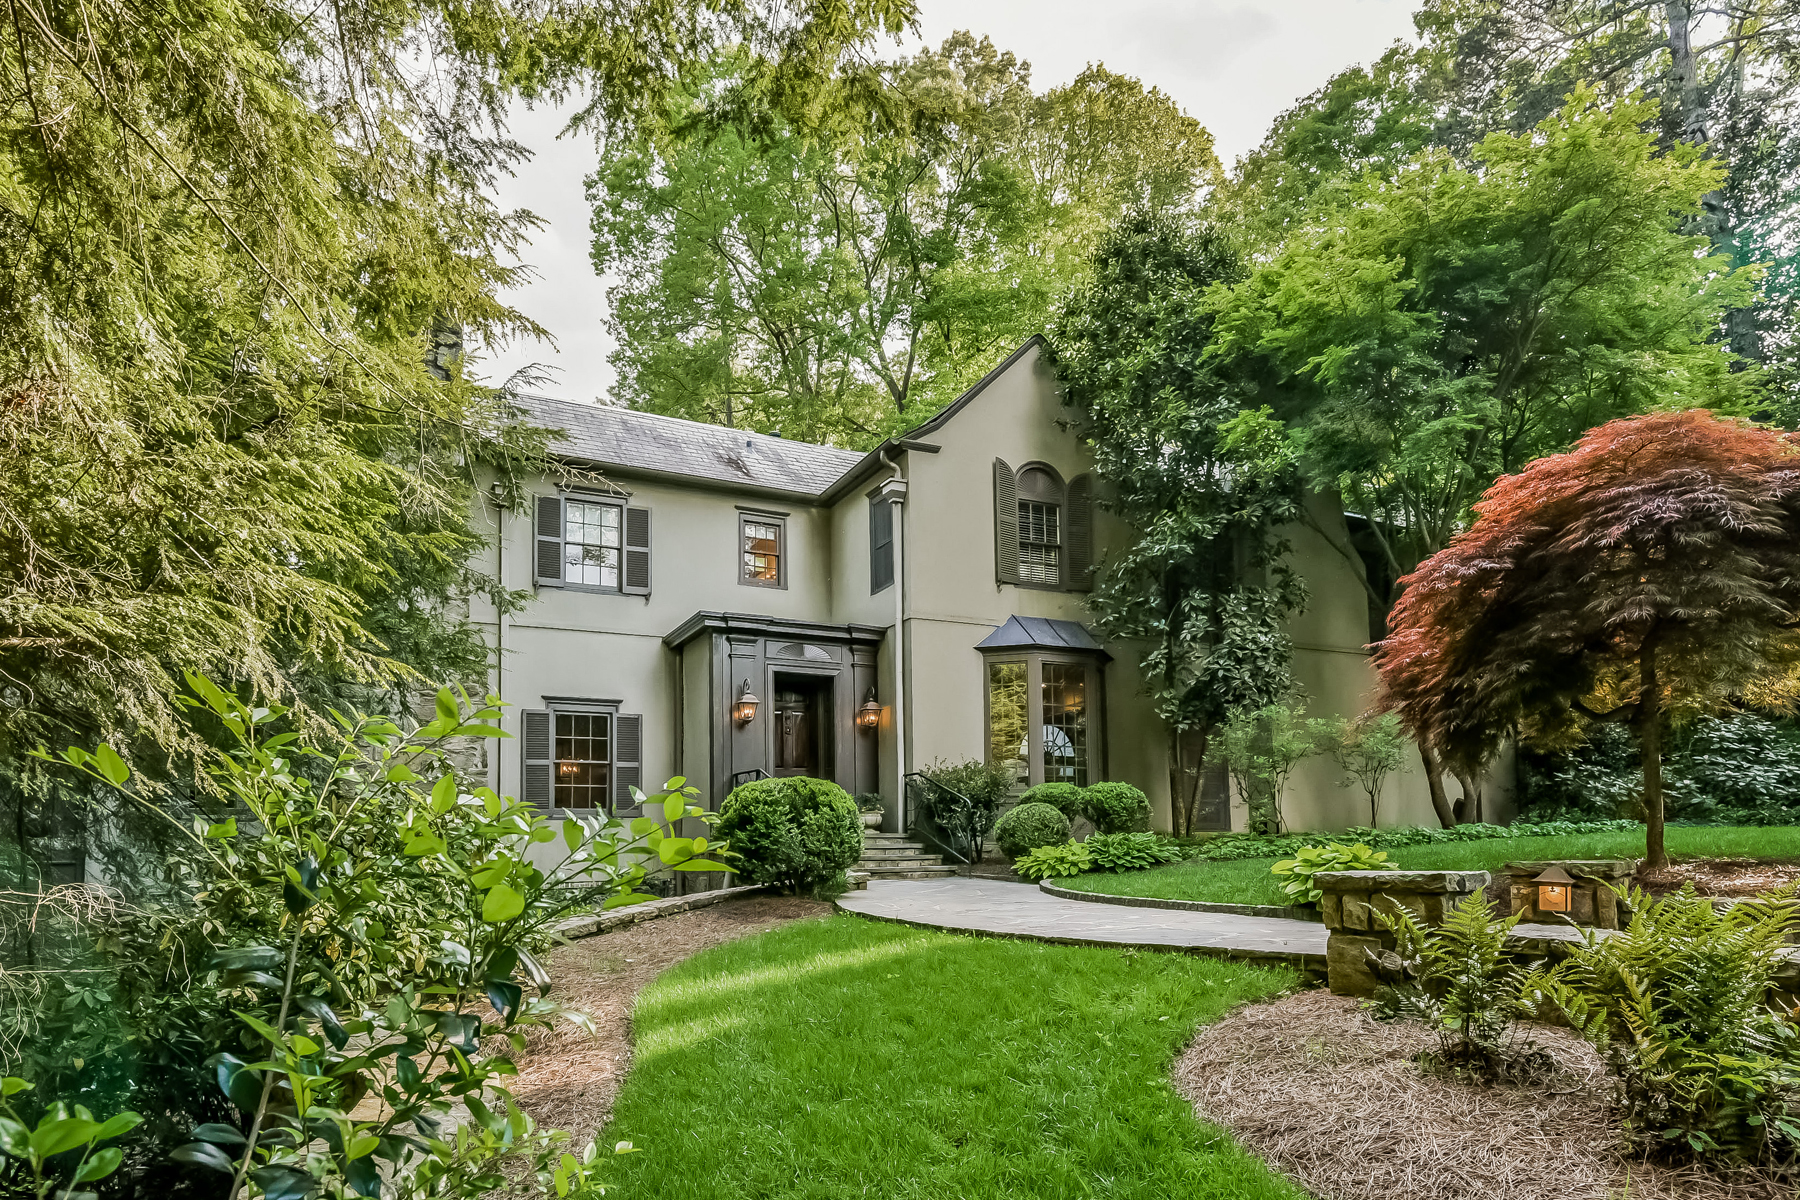 Property For Sale at European Style Home On 1.85+/- Acres In Buckhead